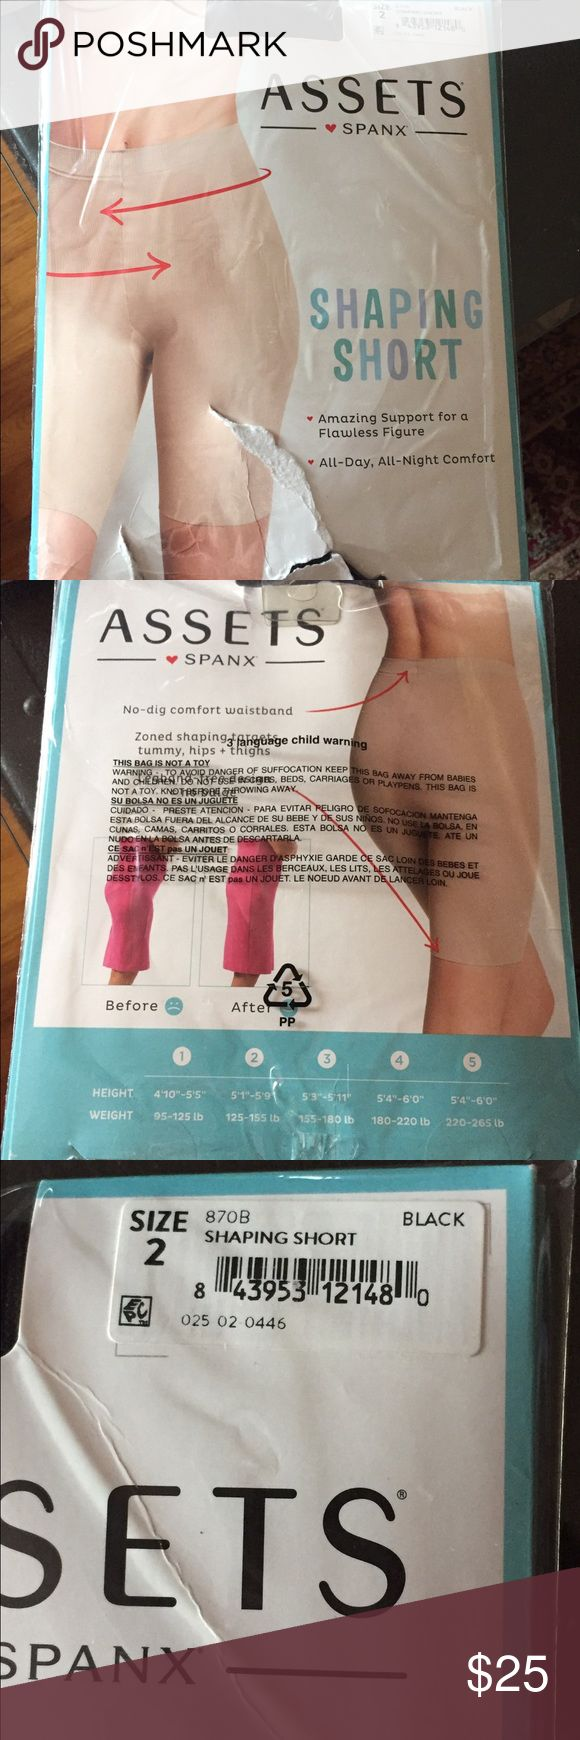 """NWT Spanx Assets shaping shorts! NWT Spanx Assets shaping shorts! Tried on but didn't work out for me. Never actually worn, literally tried on for a few seconds and put right back in package! I love them but I needed a higher waist band. These sit right at belly button. Size 3, 5'3""""-5'11"""", 155lbs-180lbs. SPANX Intimates & Sleepwear Shapewear"""